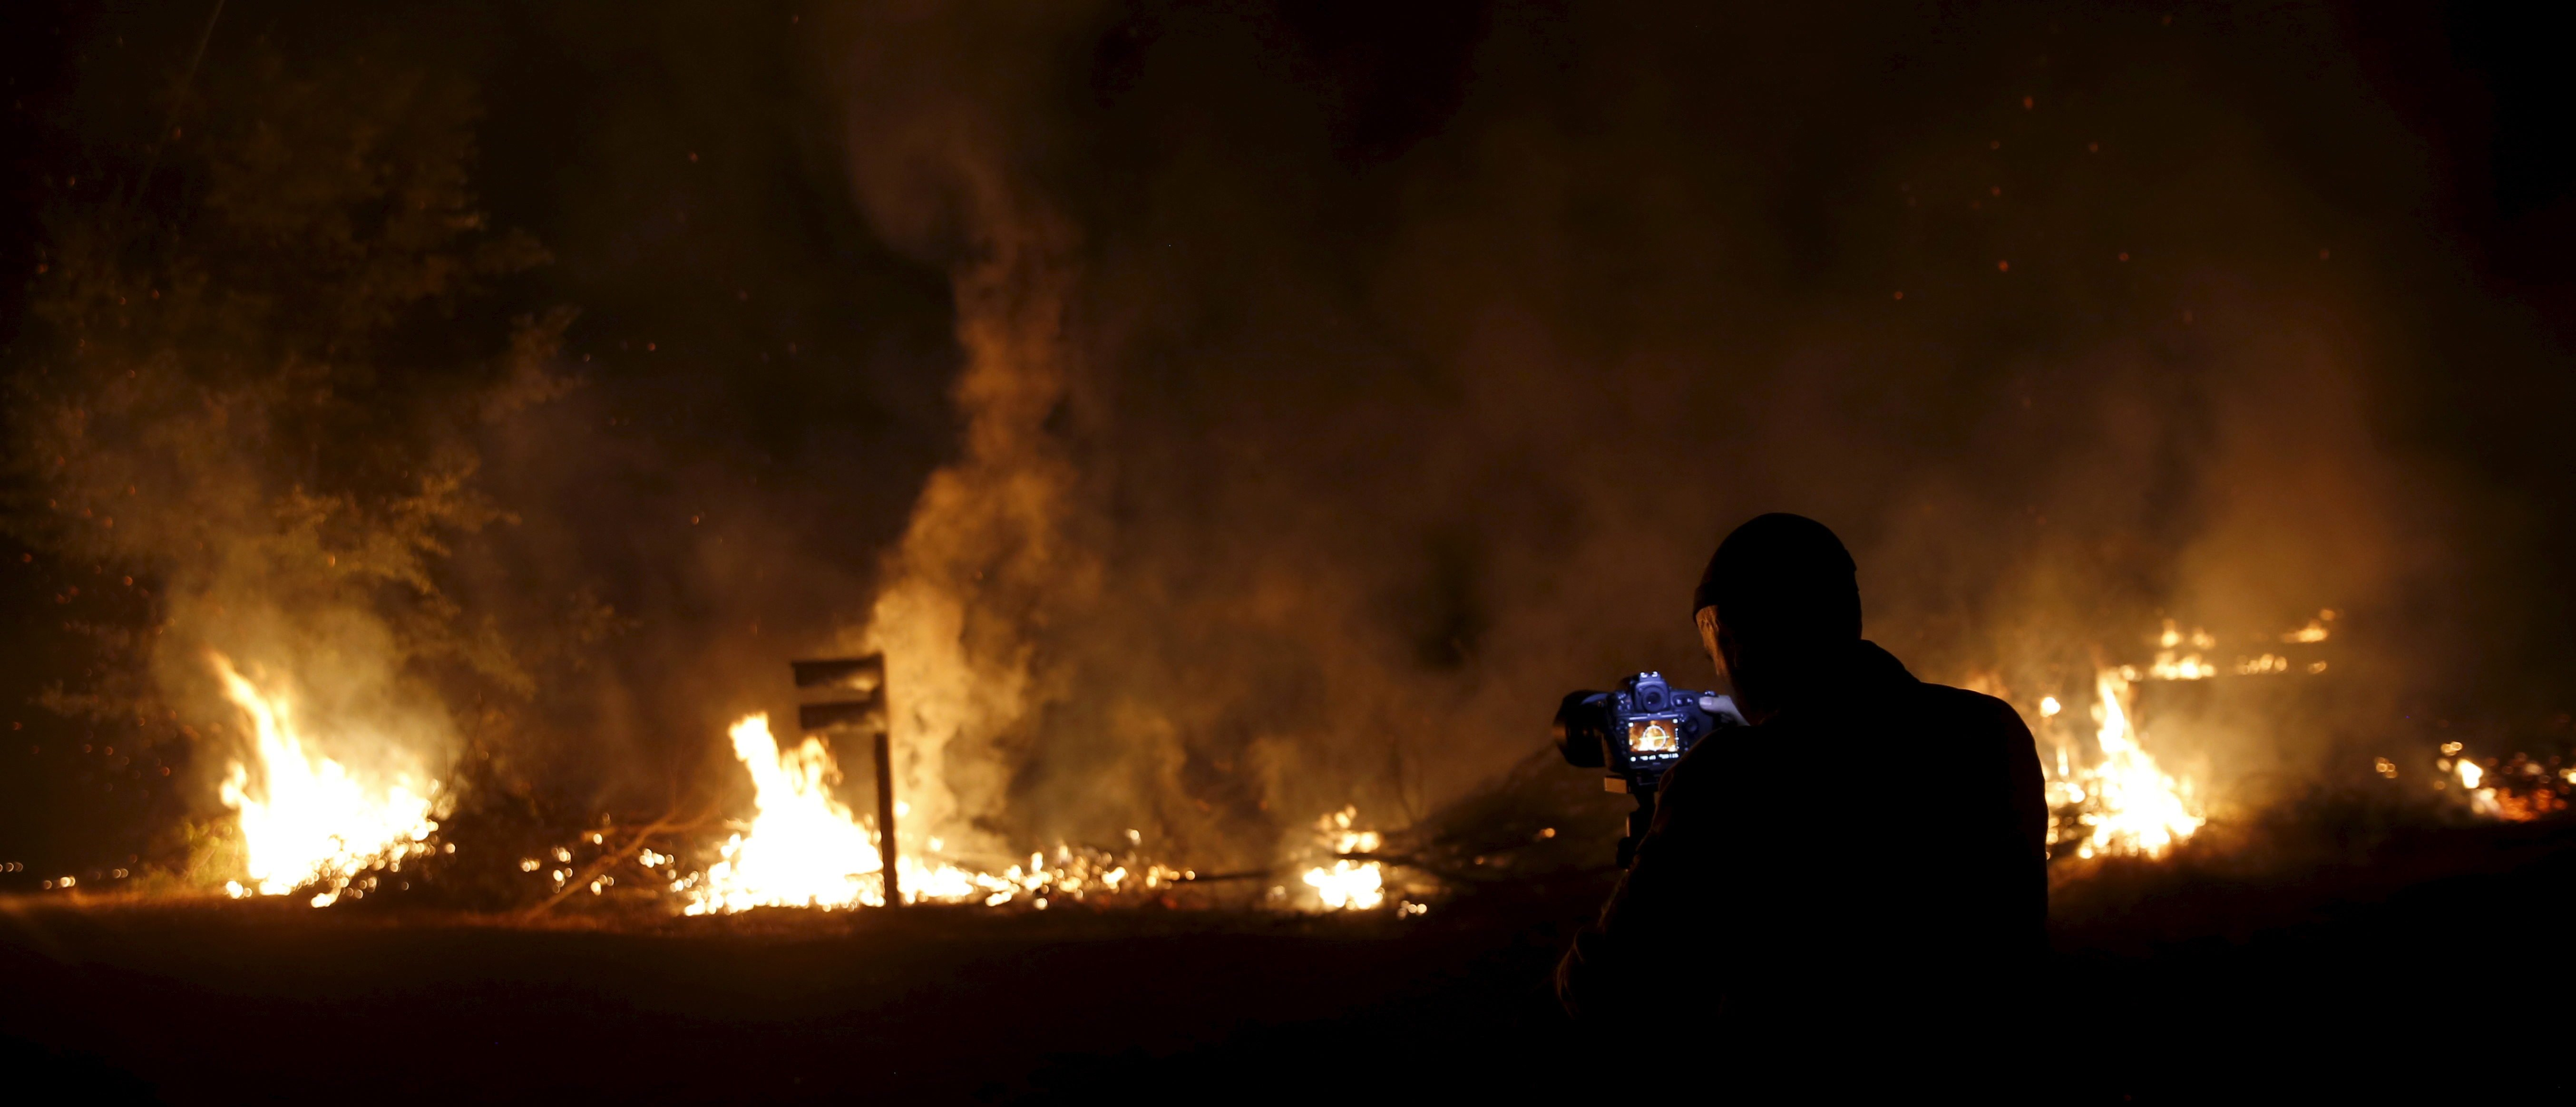 A photographer takes photographs of flames at the Jerusalem Fire in Lake County, California August 12, 2015. A wildfire burning in northern California grew rapidly on Tuesday near another massive blaze that has destroyed dozens of buildings, forcing some residents to evacuate their homes for the second time in as many weeks.The so-called Jerusalem Fire, sparked on Sunday, has spread across 14,000 acres (5,665 hectares) and was burning aggressively through drought-parched vegetation north of Napa Valley wine country, the California Department of Forestry and Fire Protection (Cal Fire) said. REUTERS/Robert Galbraith - GF10000172428